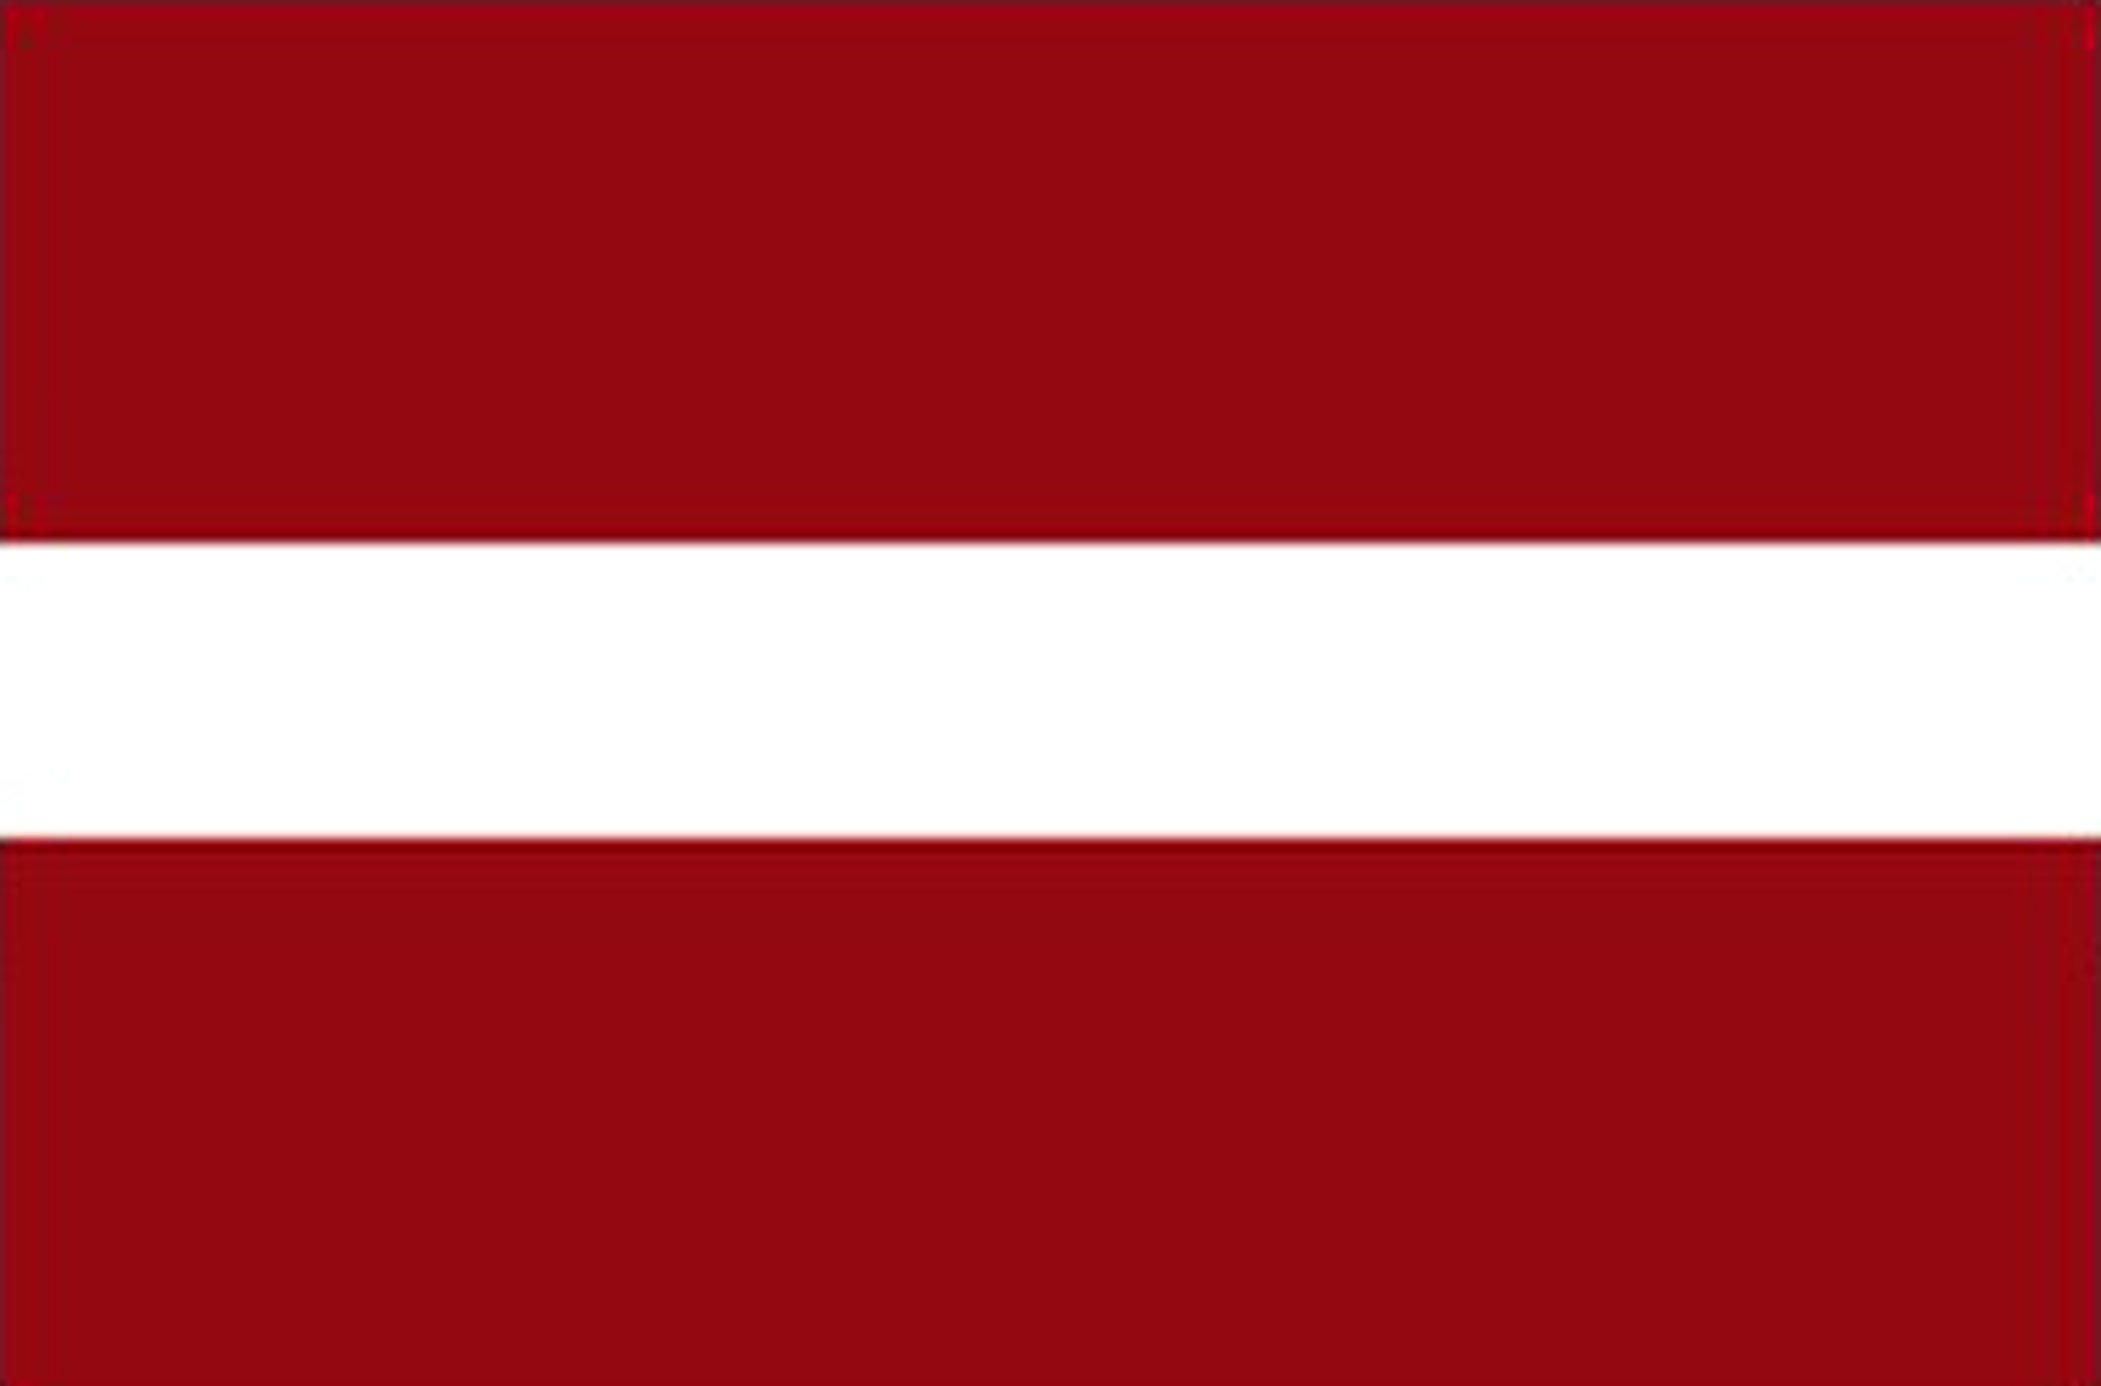 Latvian Flags (Latvia) from The World Flag Database